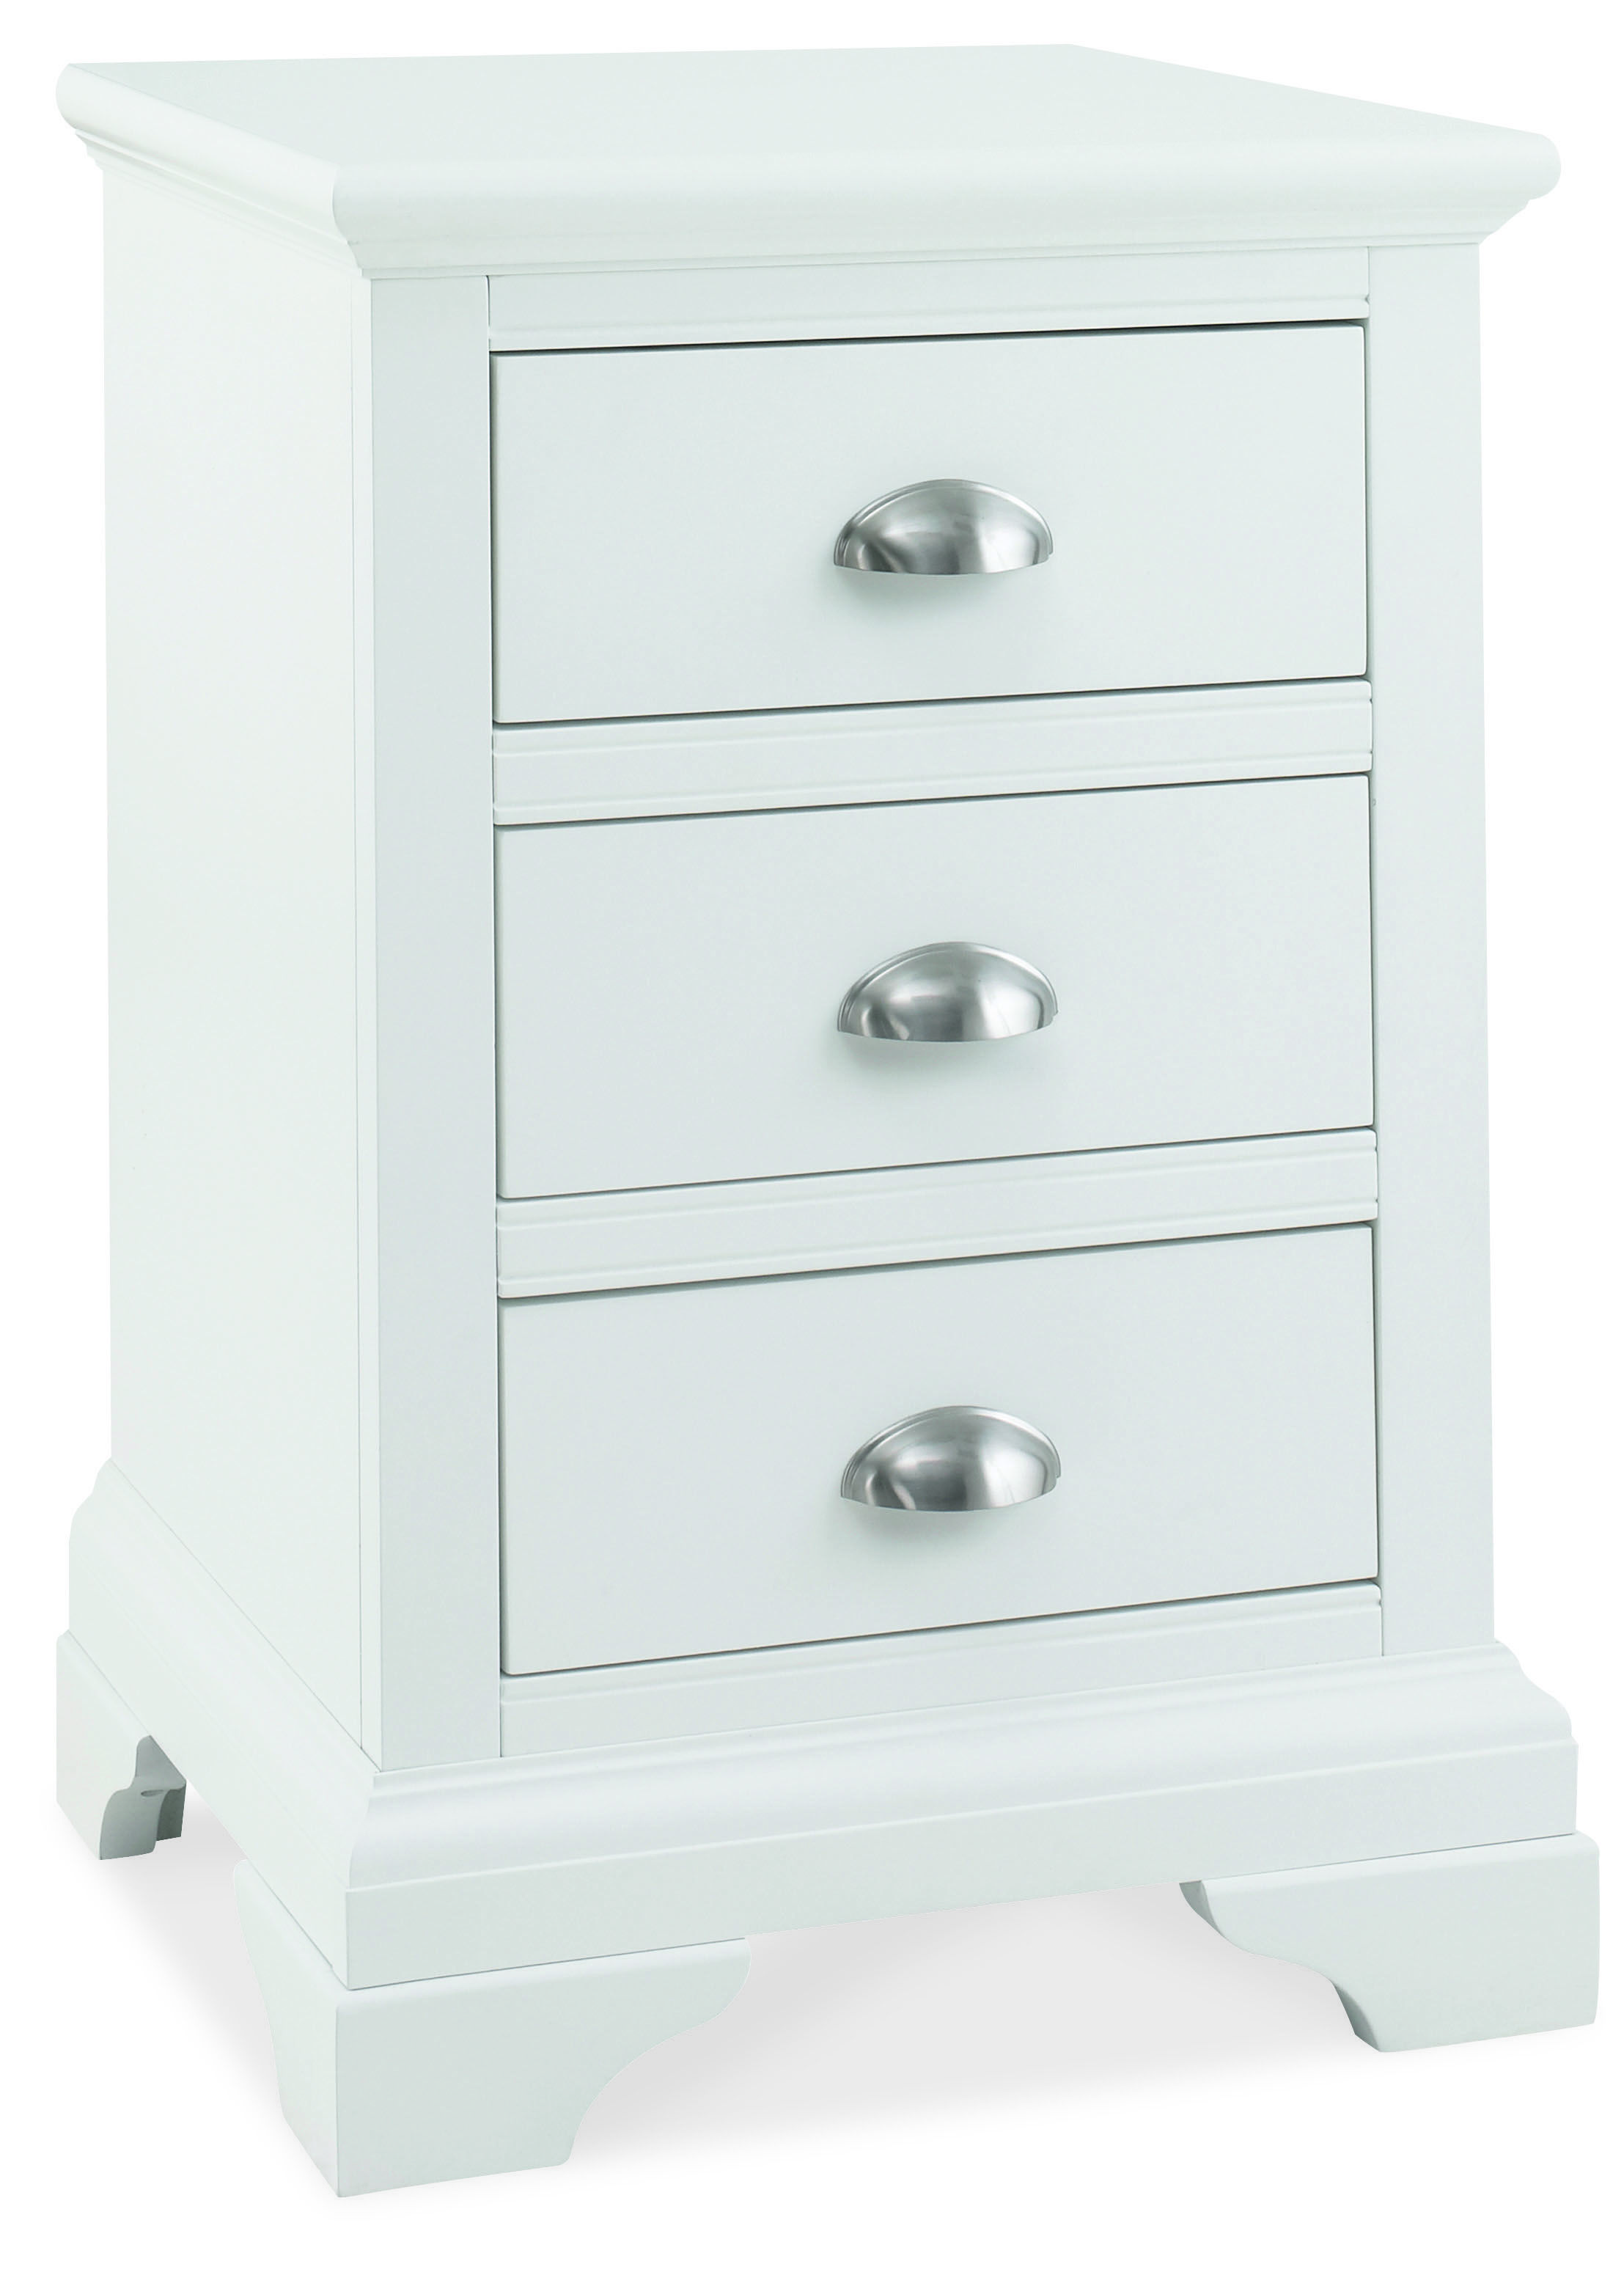 mirrored nightstands full drawer lacquer white flo blue chest drawers large size dressers nightstand of bookcase